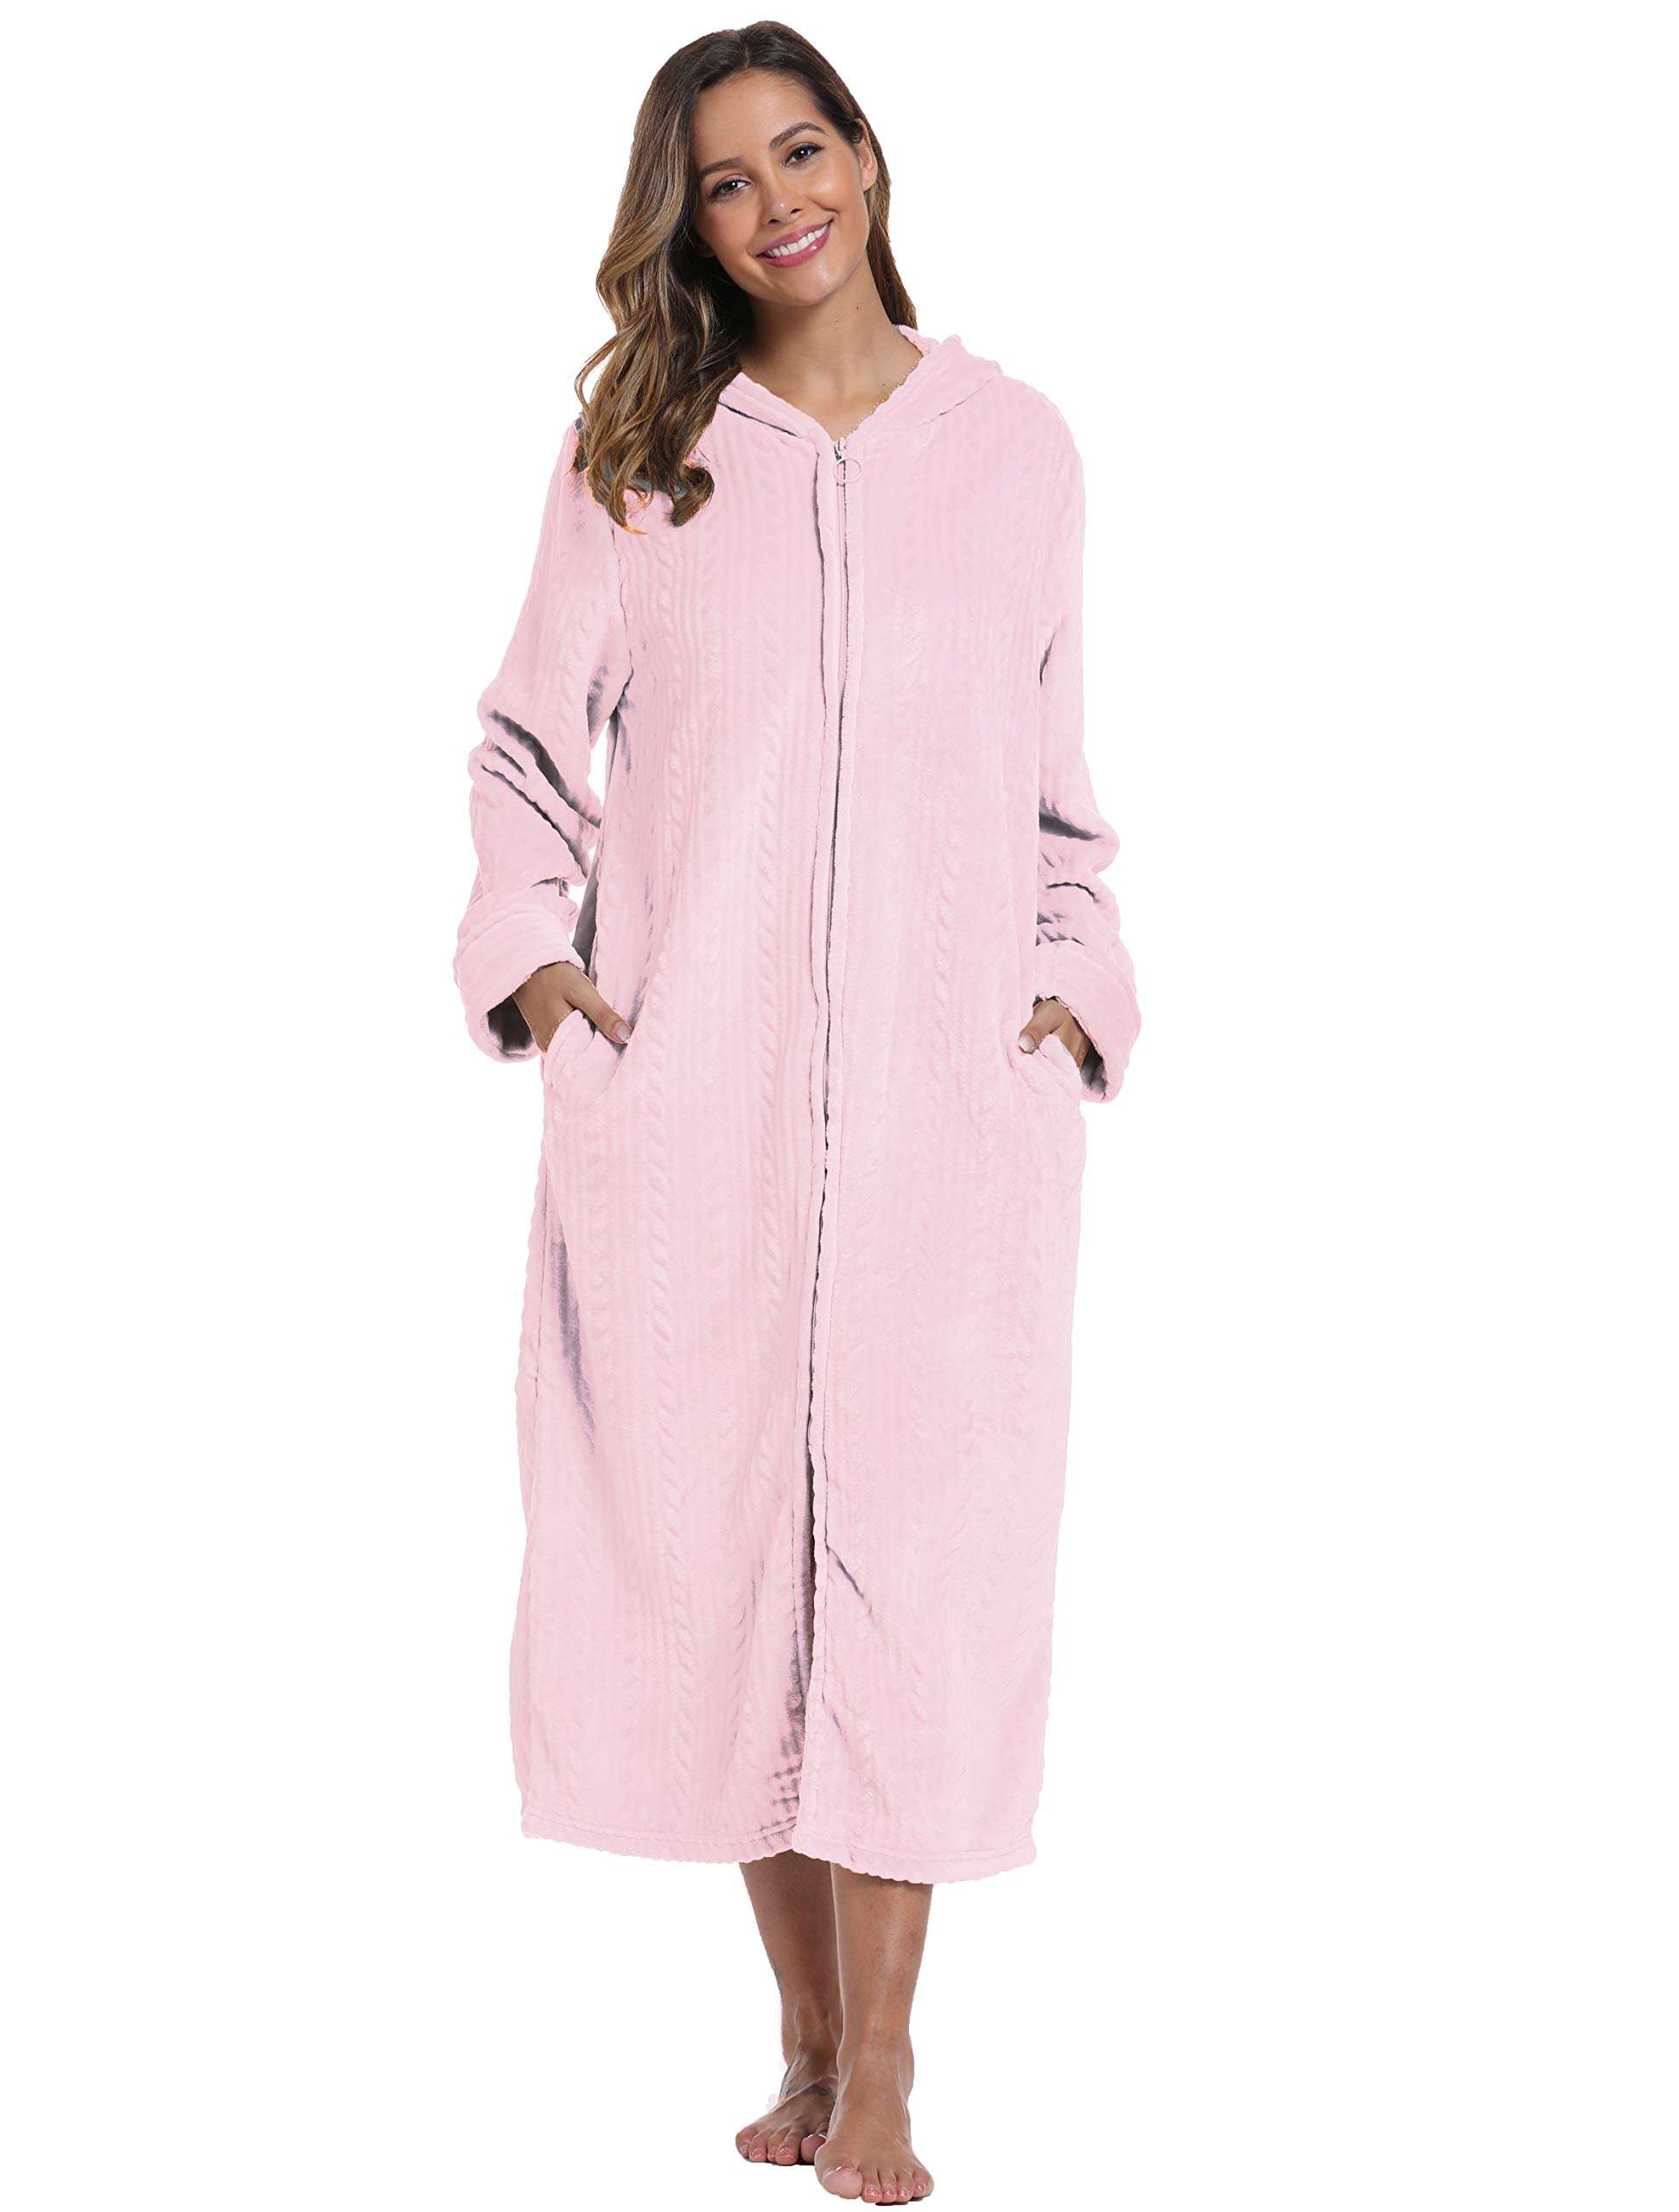 Foucome Robes for Women with Hood Long Soft Warm Full Length Sleepwear Zipper Front Plush Fleece Winter Ladies Robes